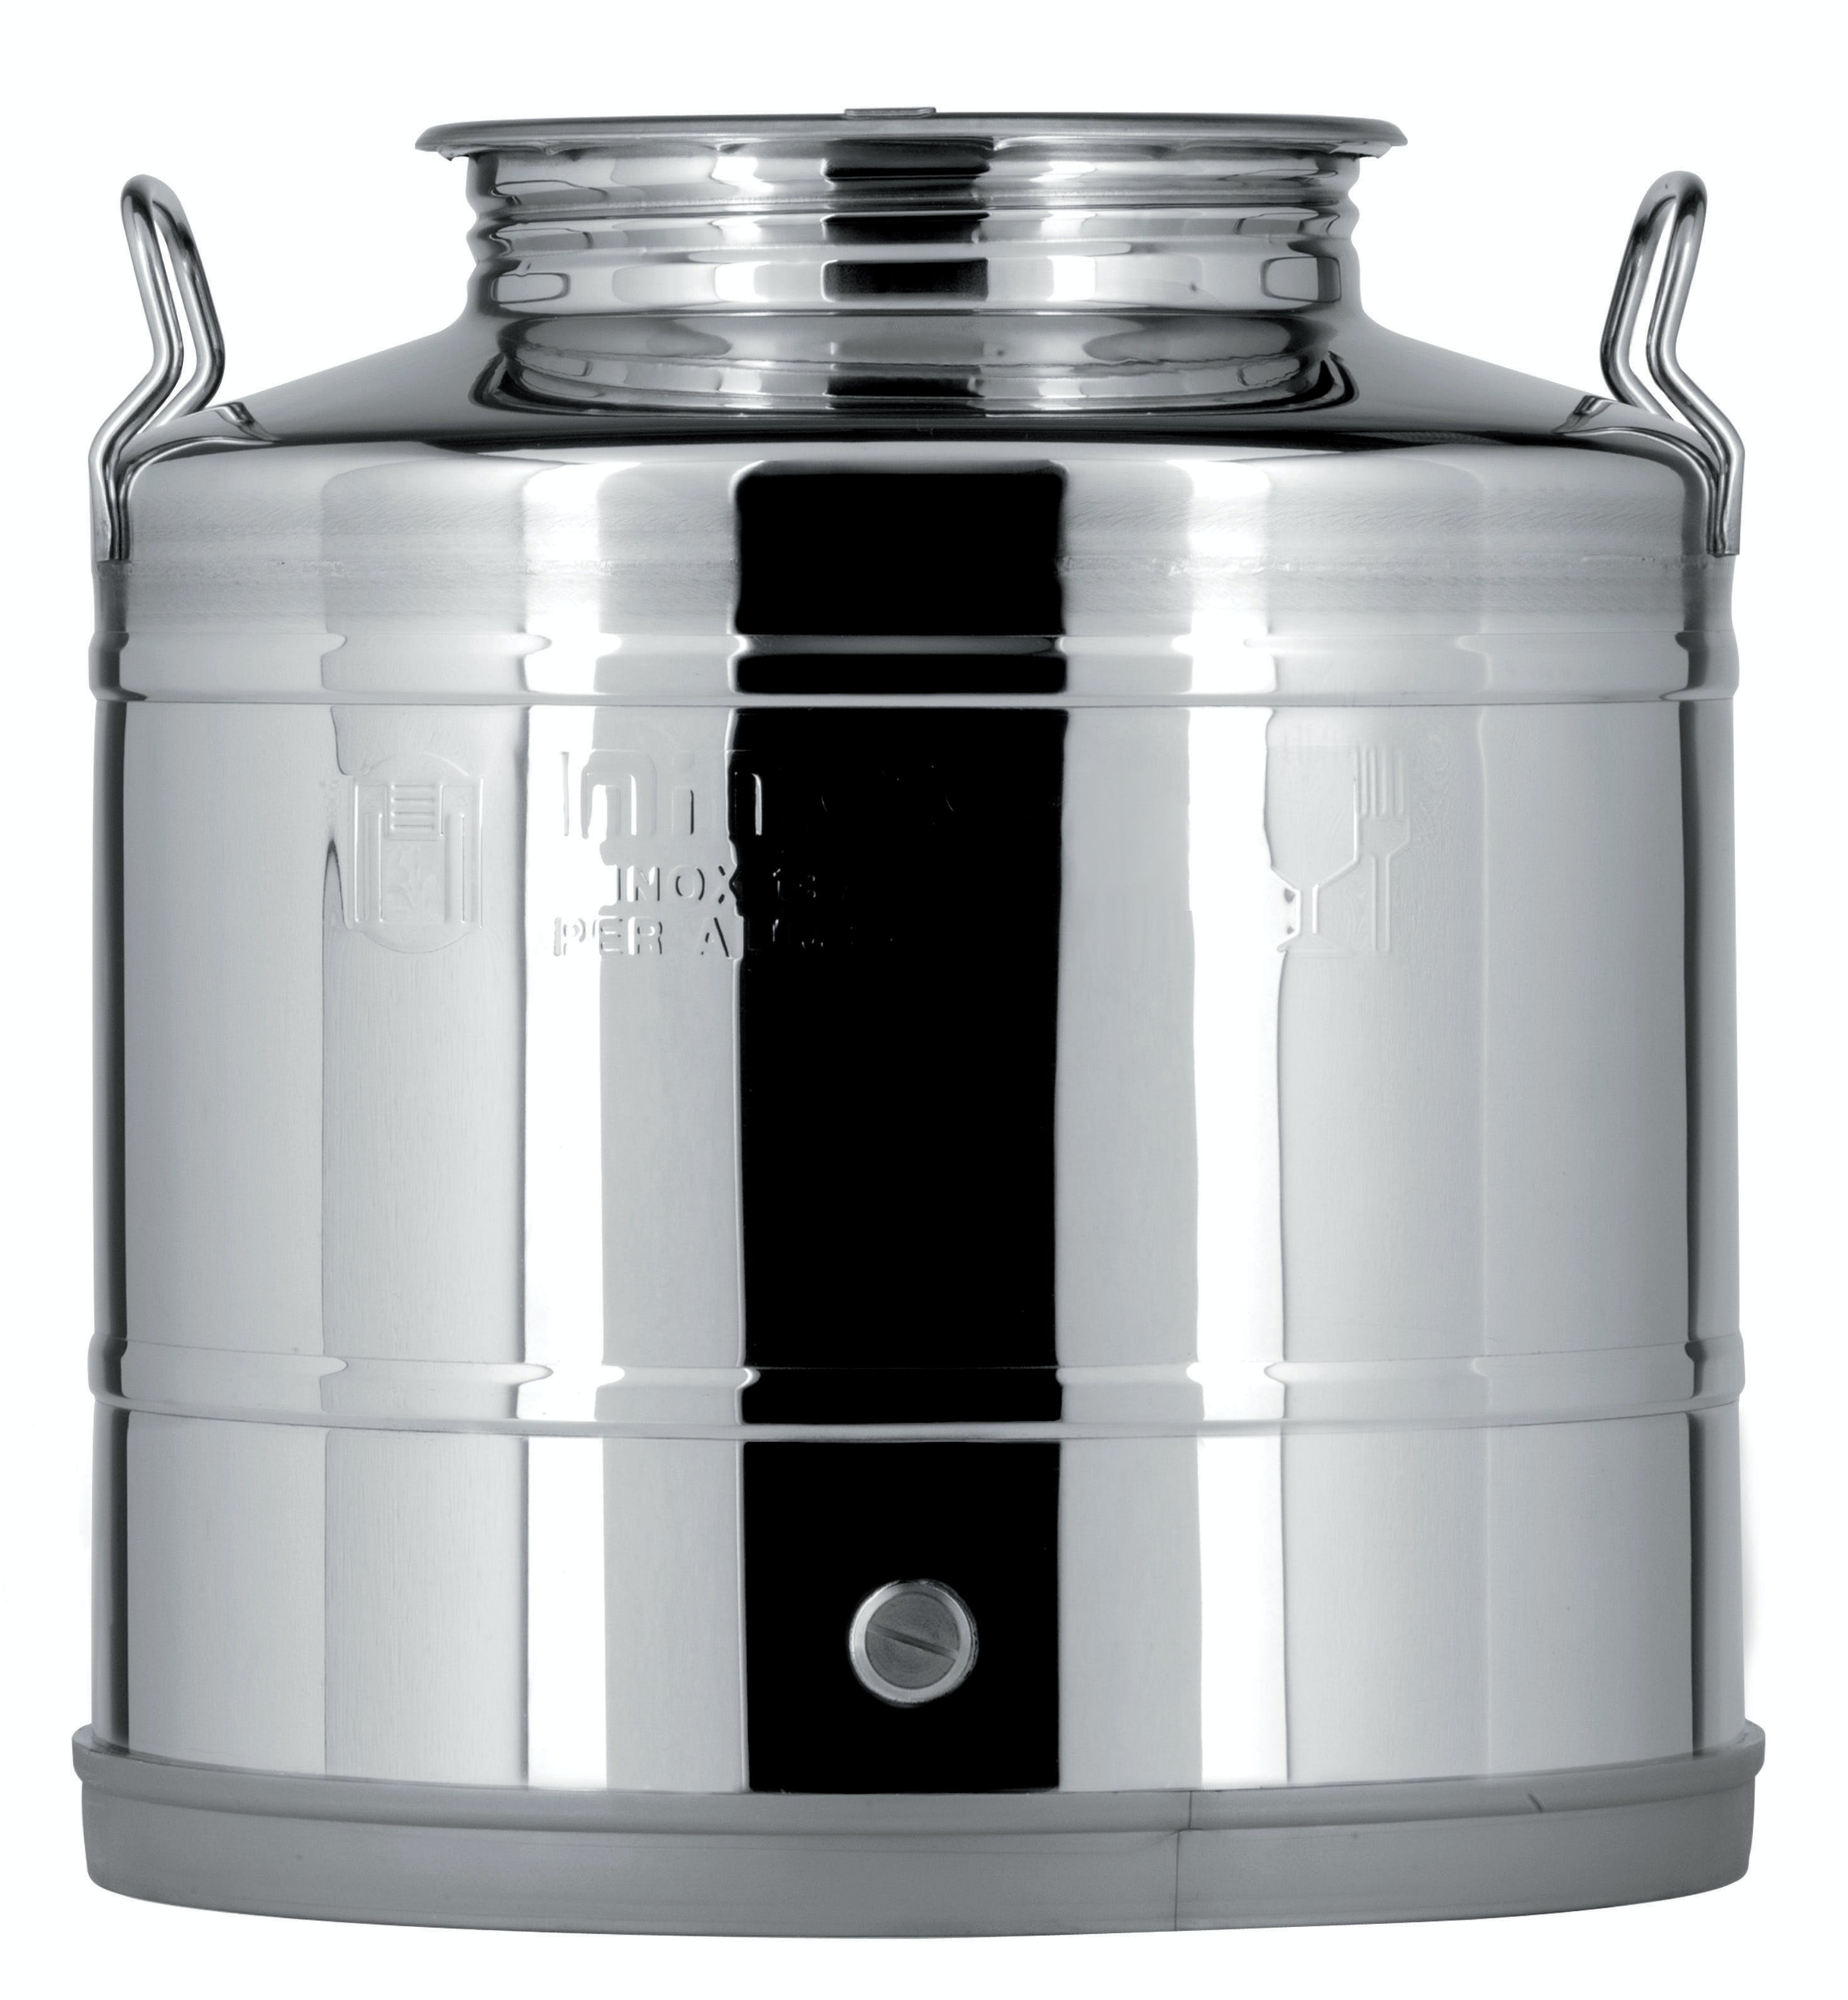 Spigot Sold Separately - Italian Made Stainless Steel National Sanitary Foundation (NSF) Certified Fusti-25 Liters - sold by M5 Corporation